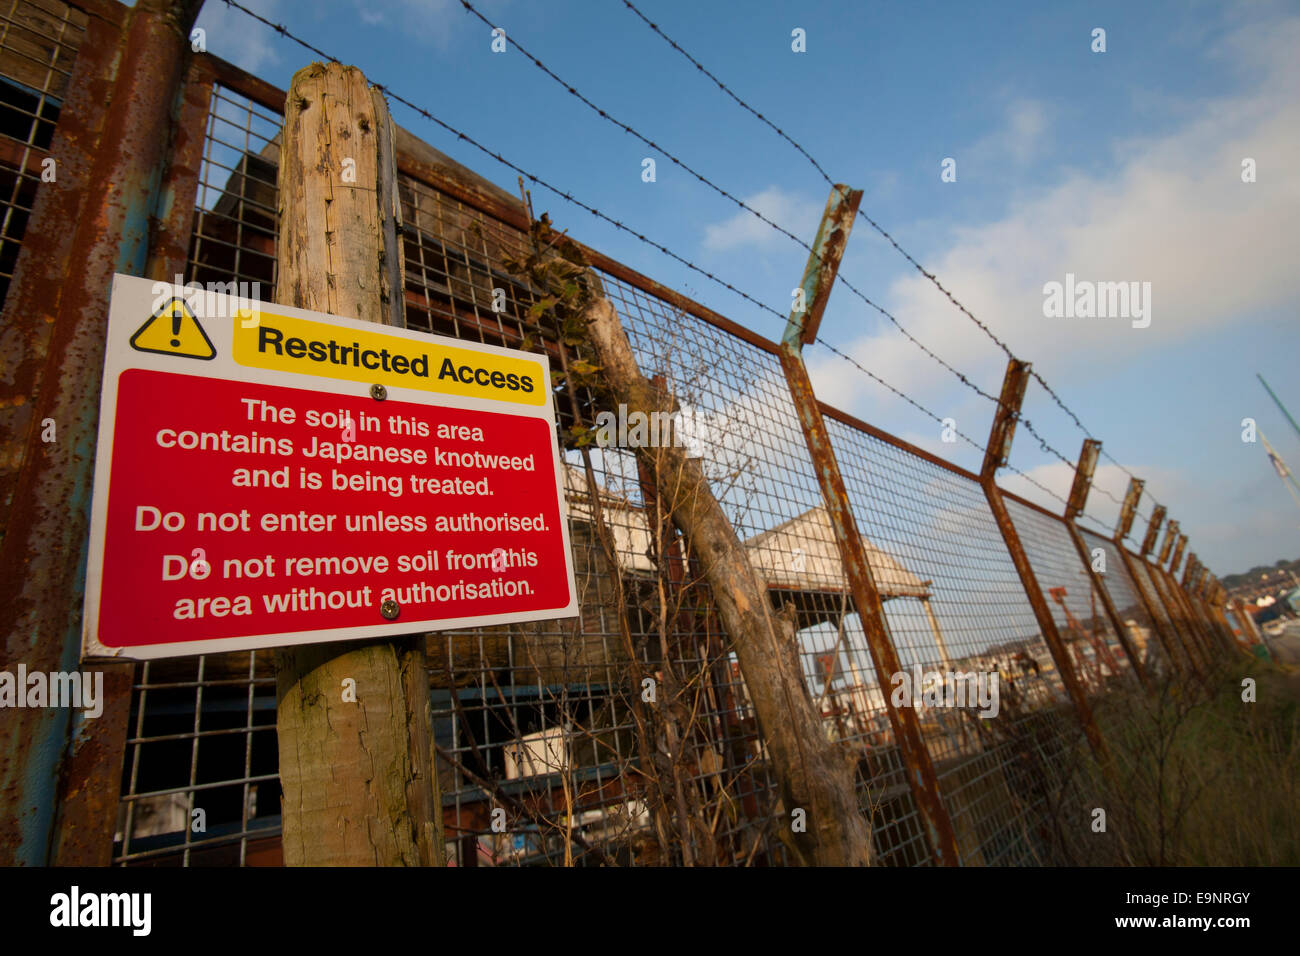 Restricted Access sign Japanese Knotweed treatment area industrial Isle of Wight - Stock Image